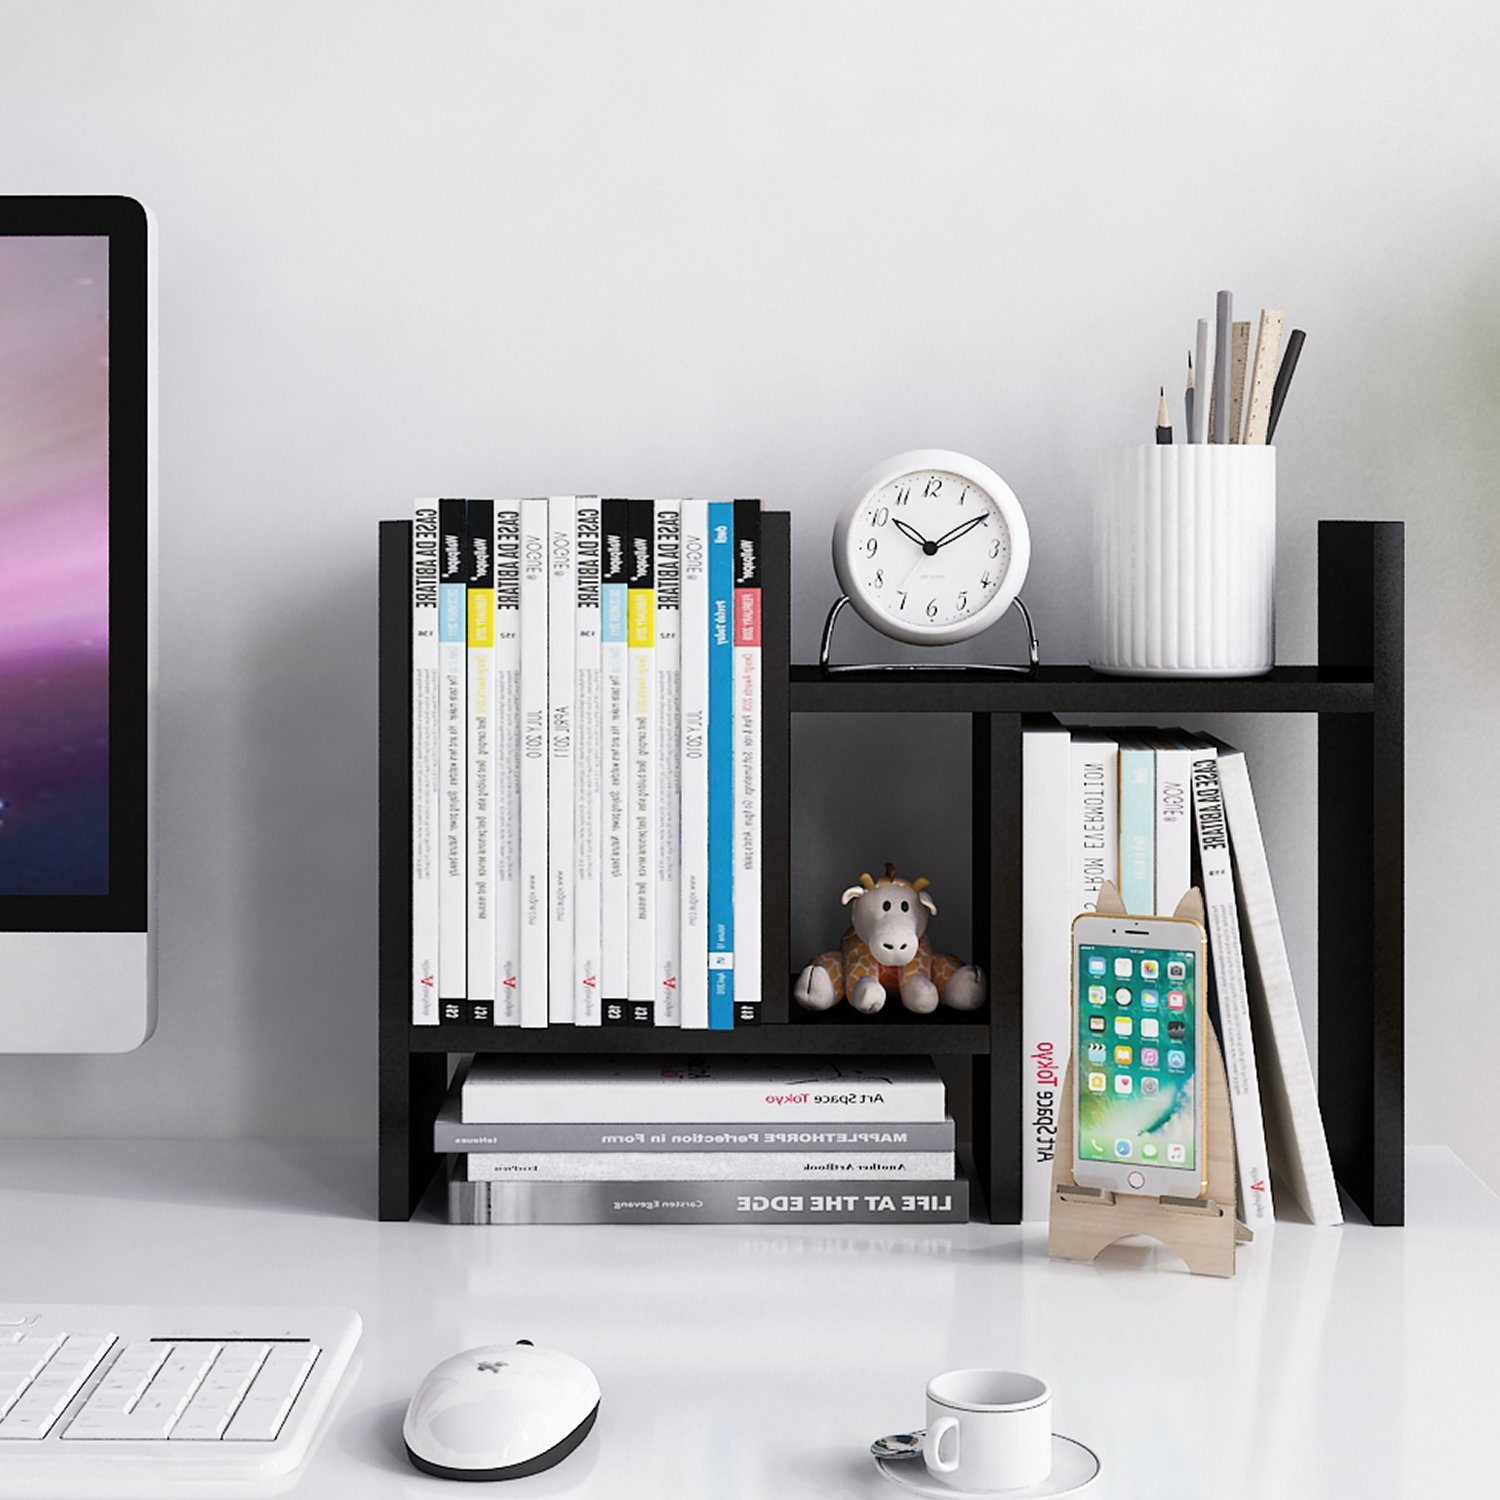 Jerry & Maggie Wood Display Shelf - Things You Should Have on Your Office Desk